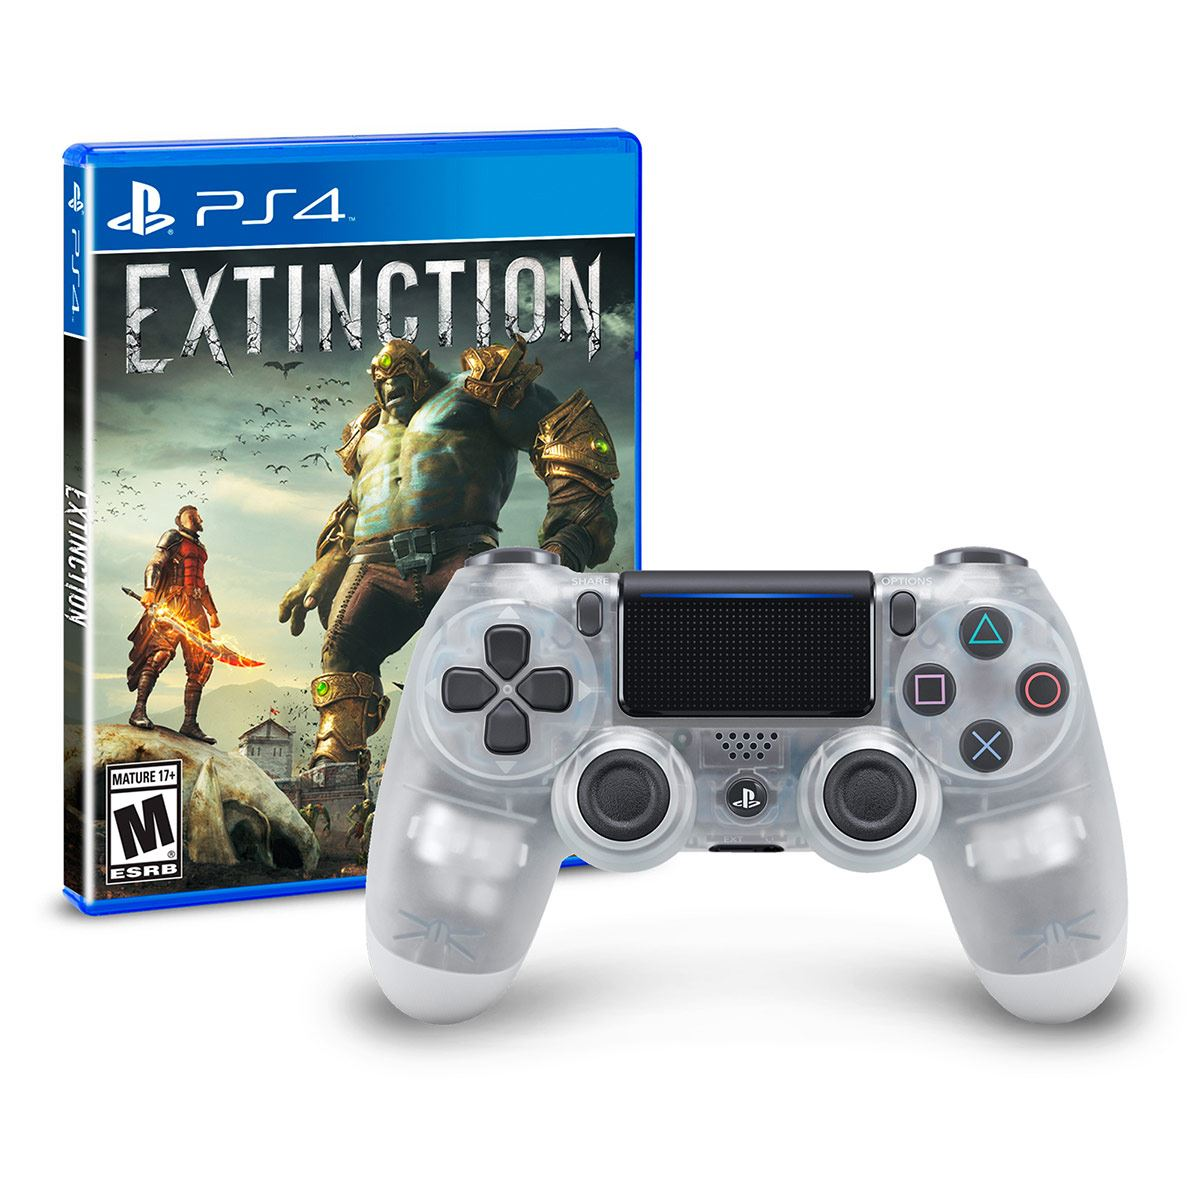 Control DS4 Crystal + PS4 Extinction